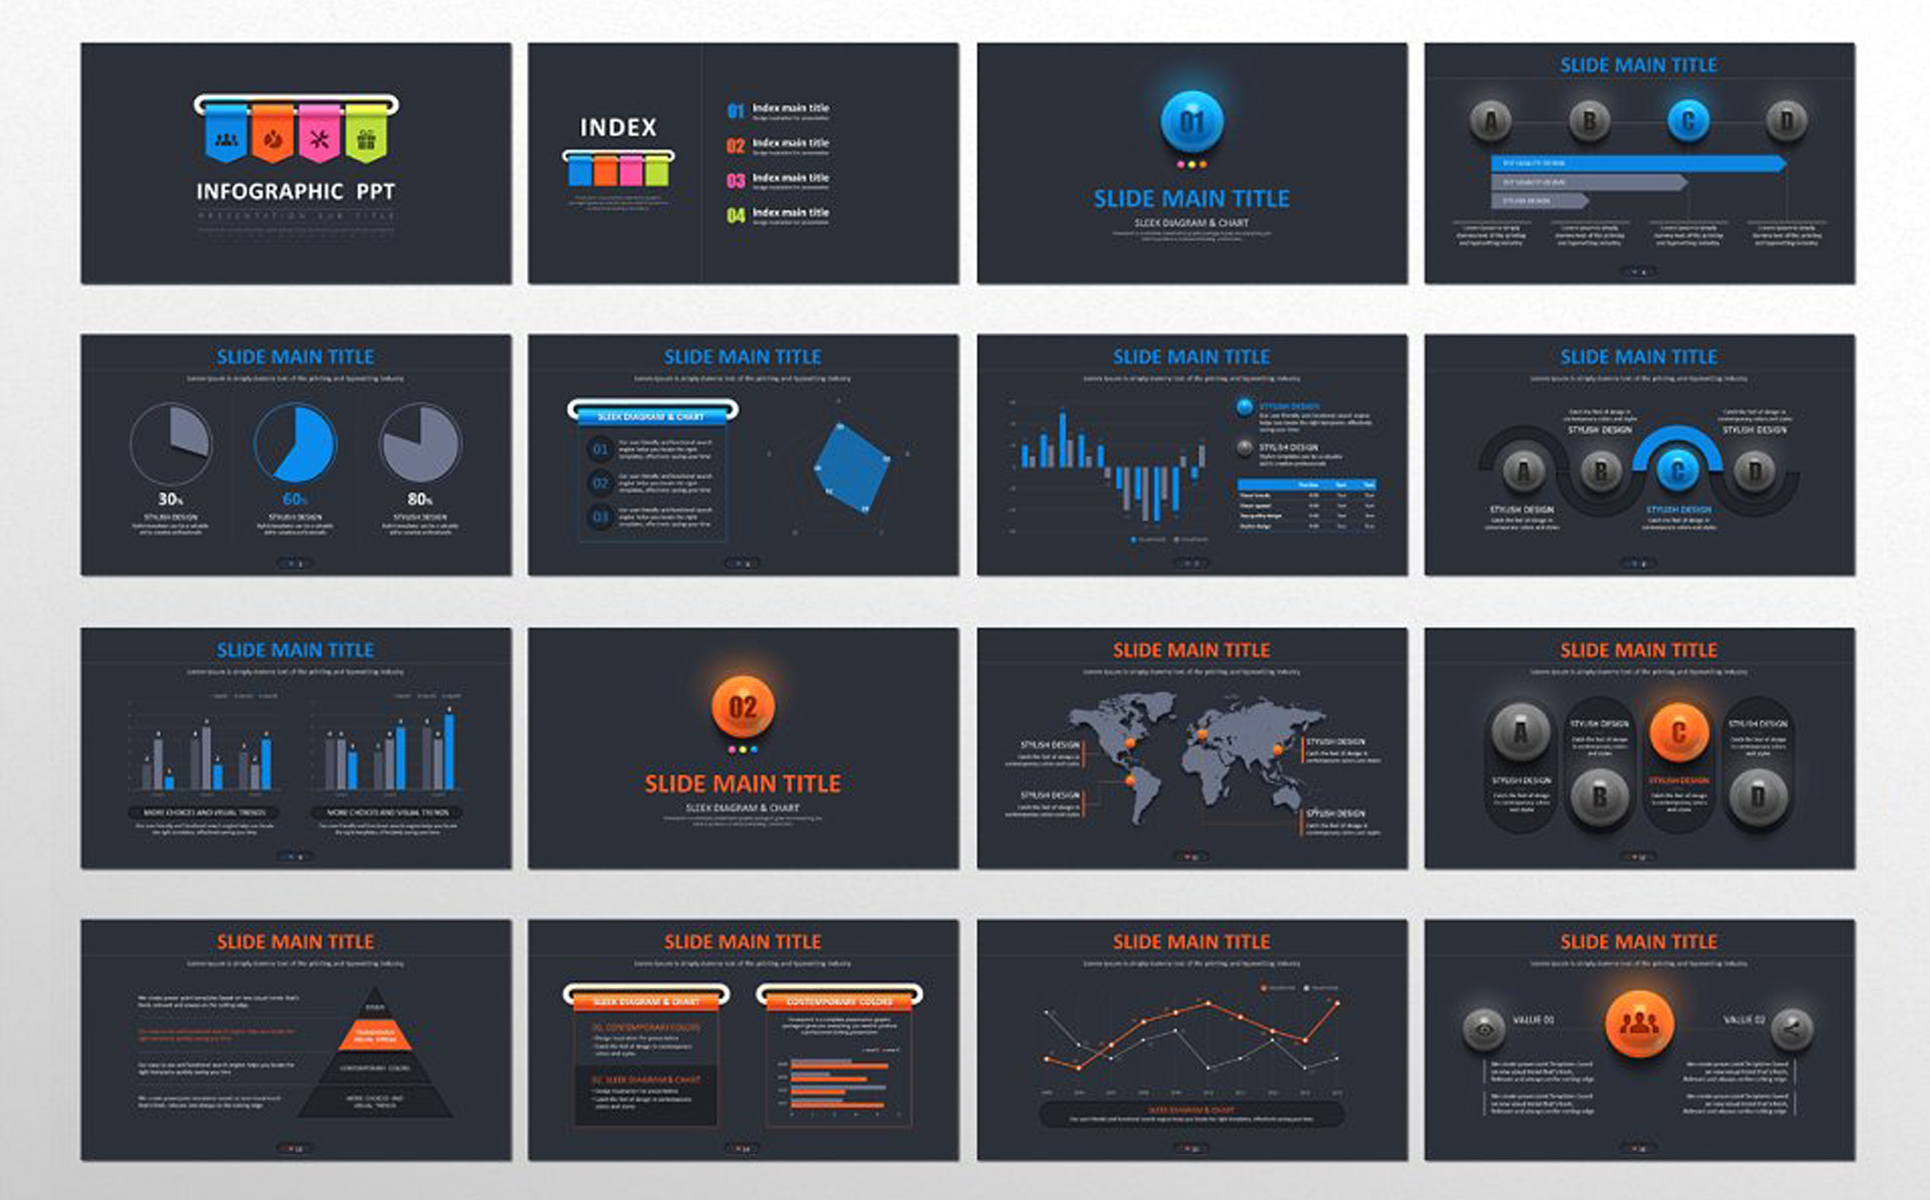 Infographic PPT PowerPoint Template